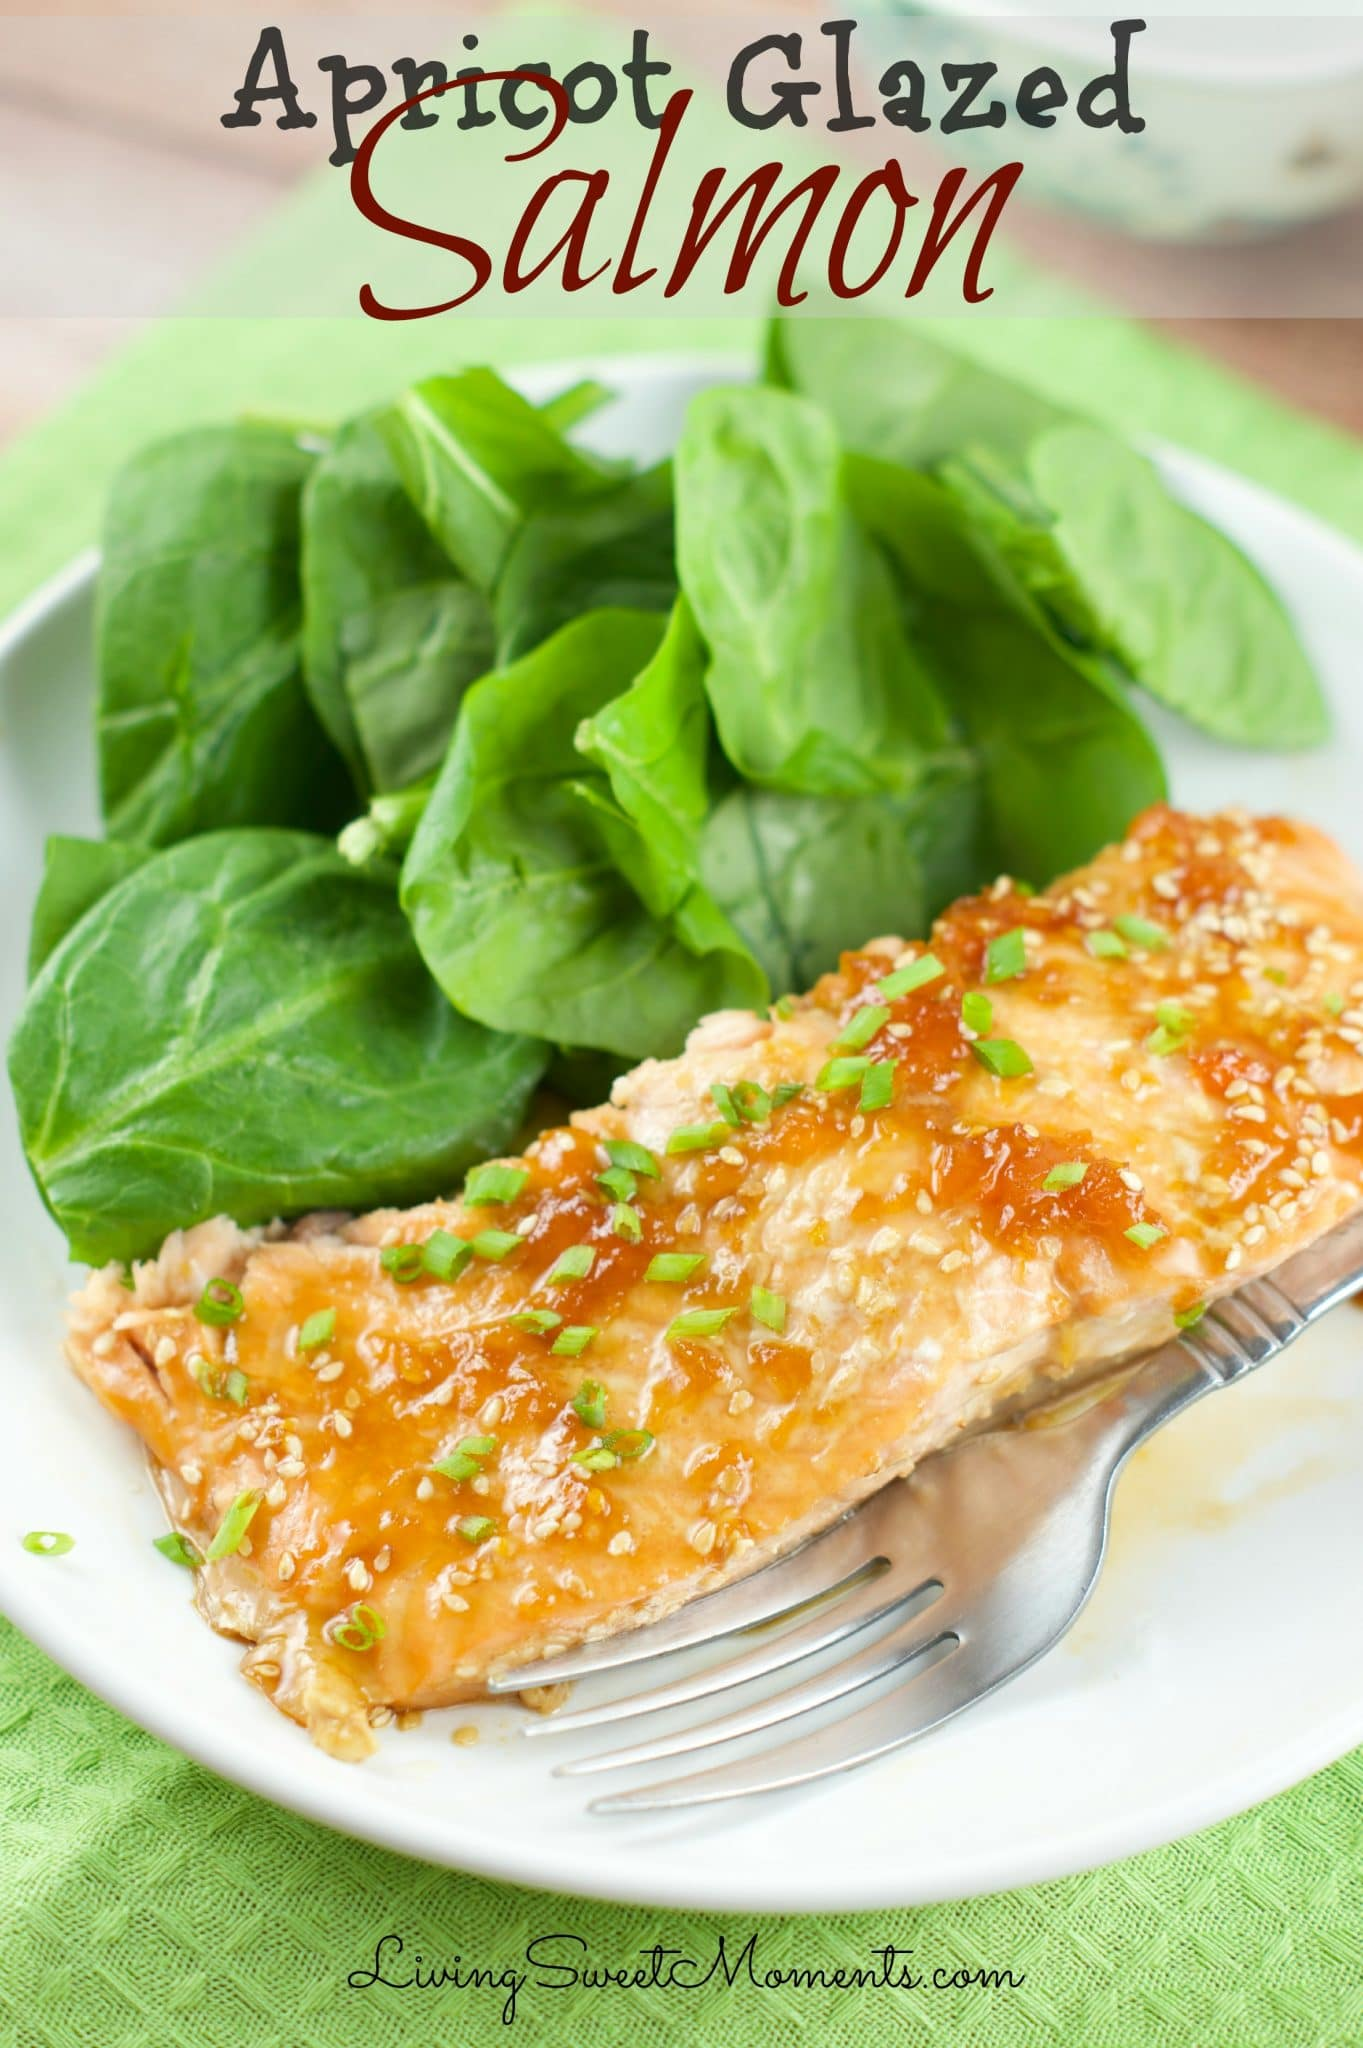 Apricot Glazed Salmon - Just 5 ingredients is all it takes to make this elegant and easy quick weeknight dinner. The Baked Salmon is juicy, sweet and tasty.